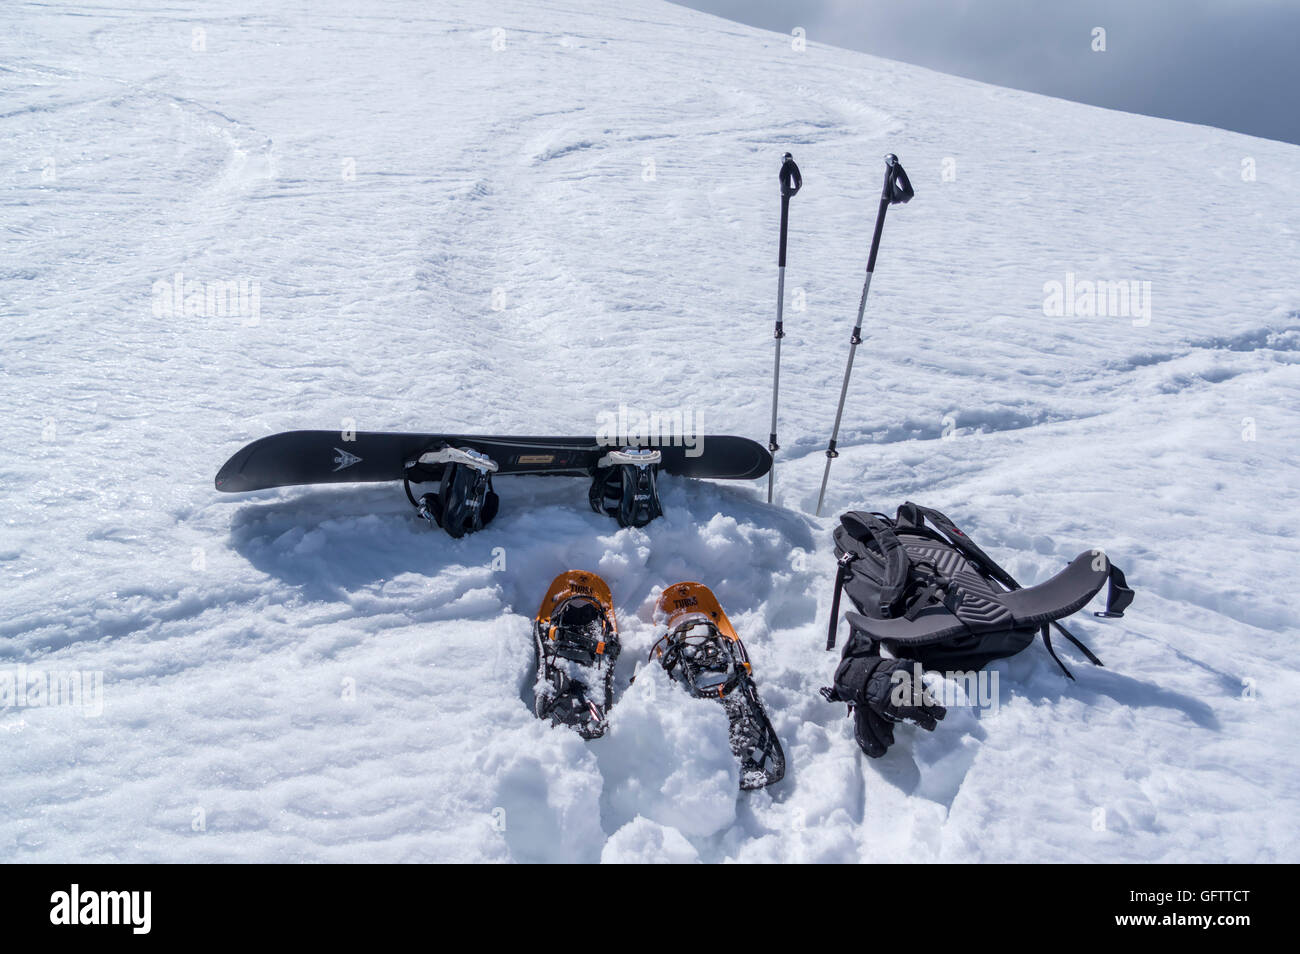 Winter backcountry gear in the snow, consisting of snowshoes and trekking poles for the ascent, and a snowboard - Stock Image